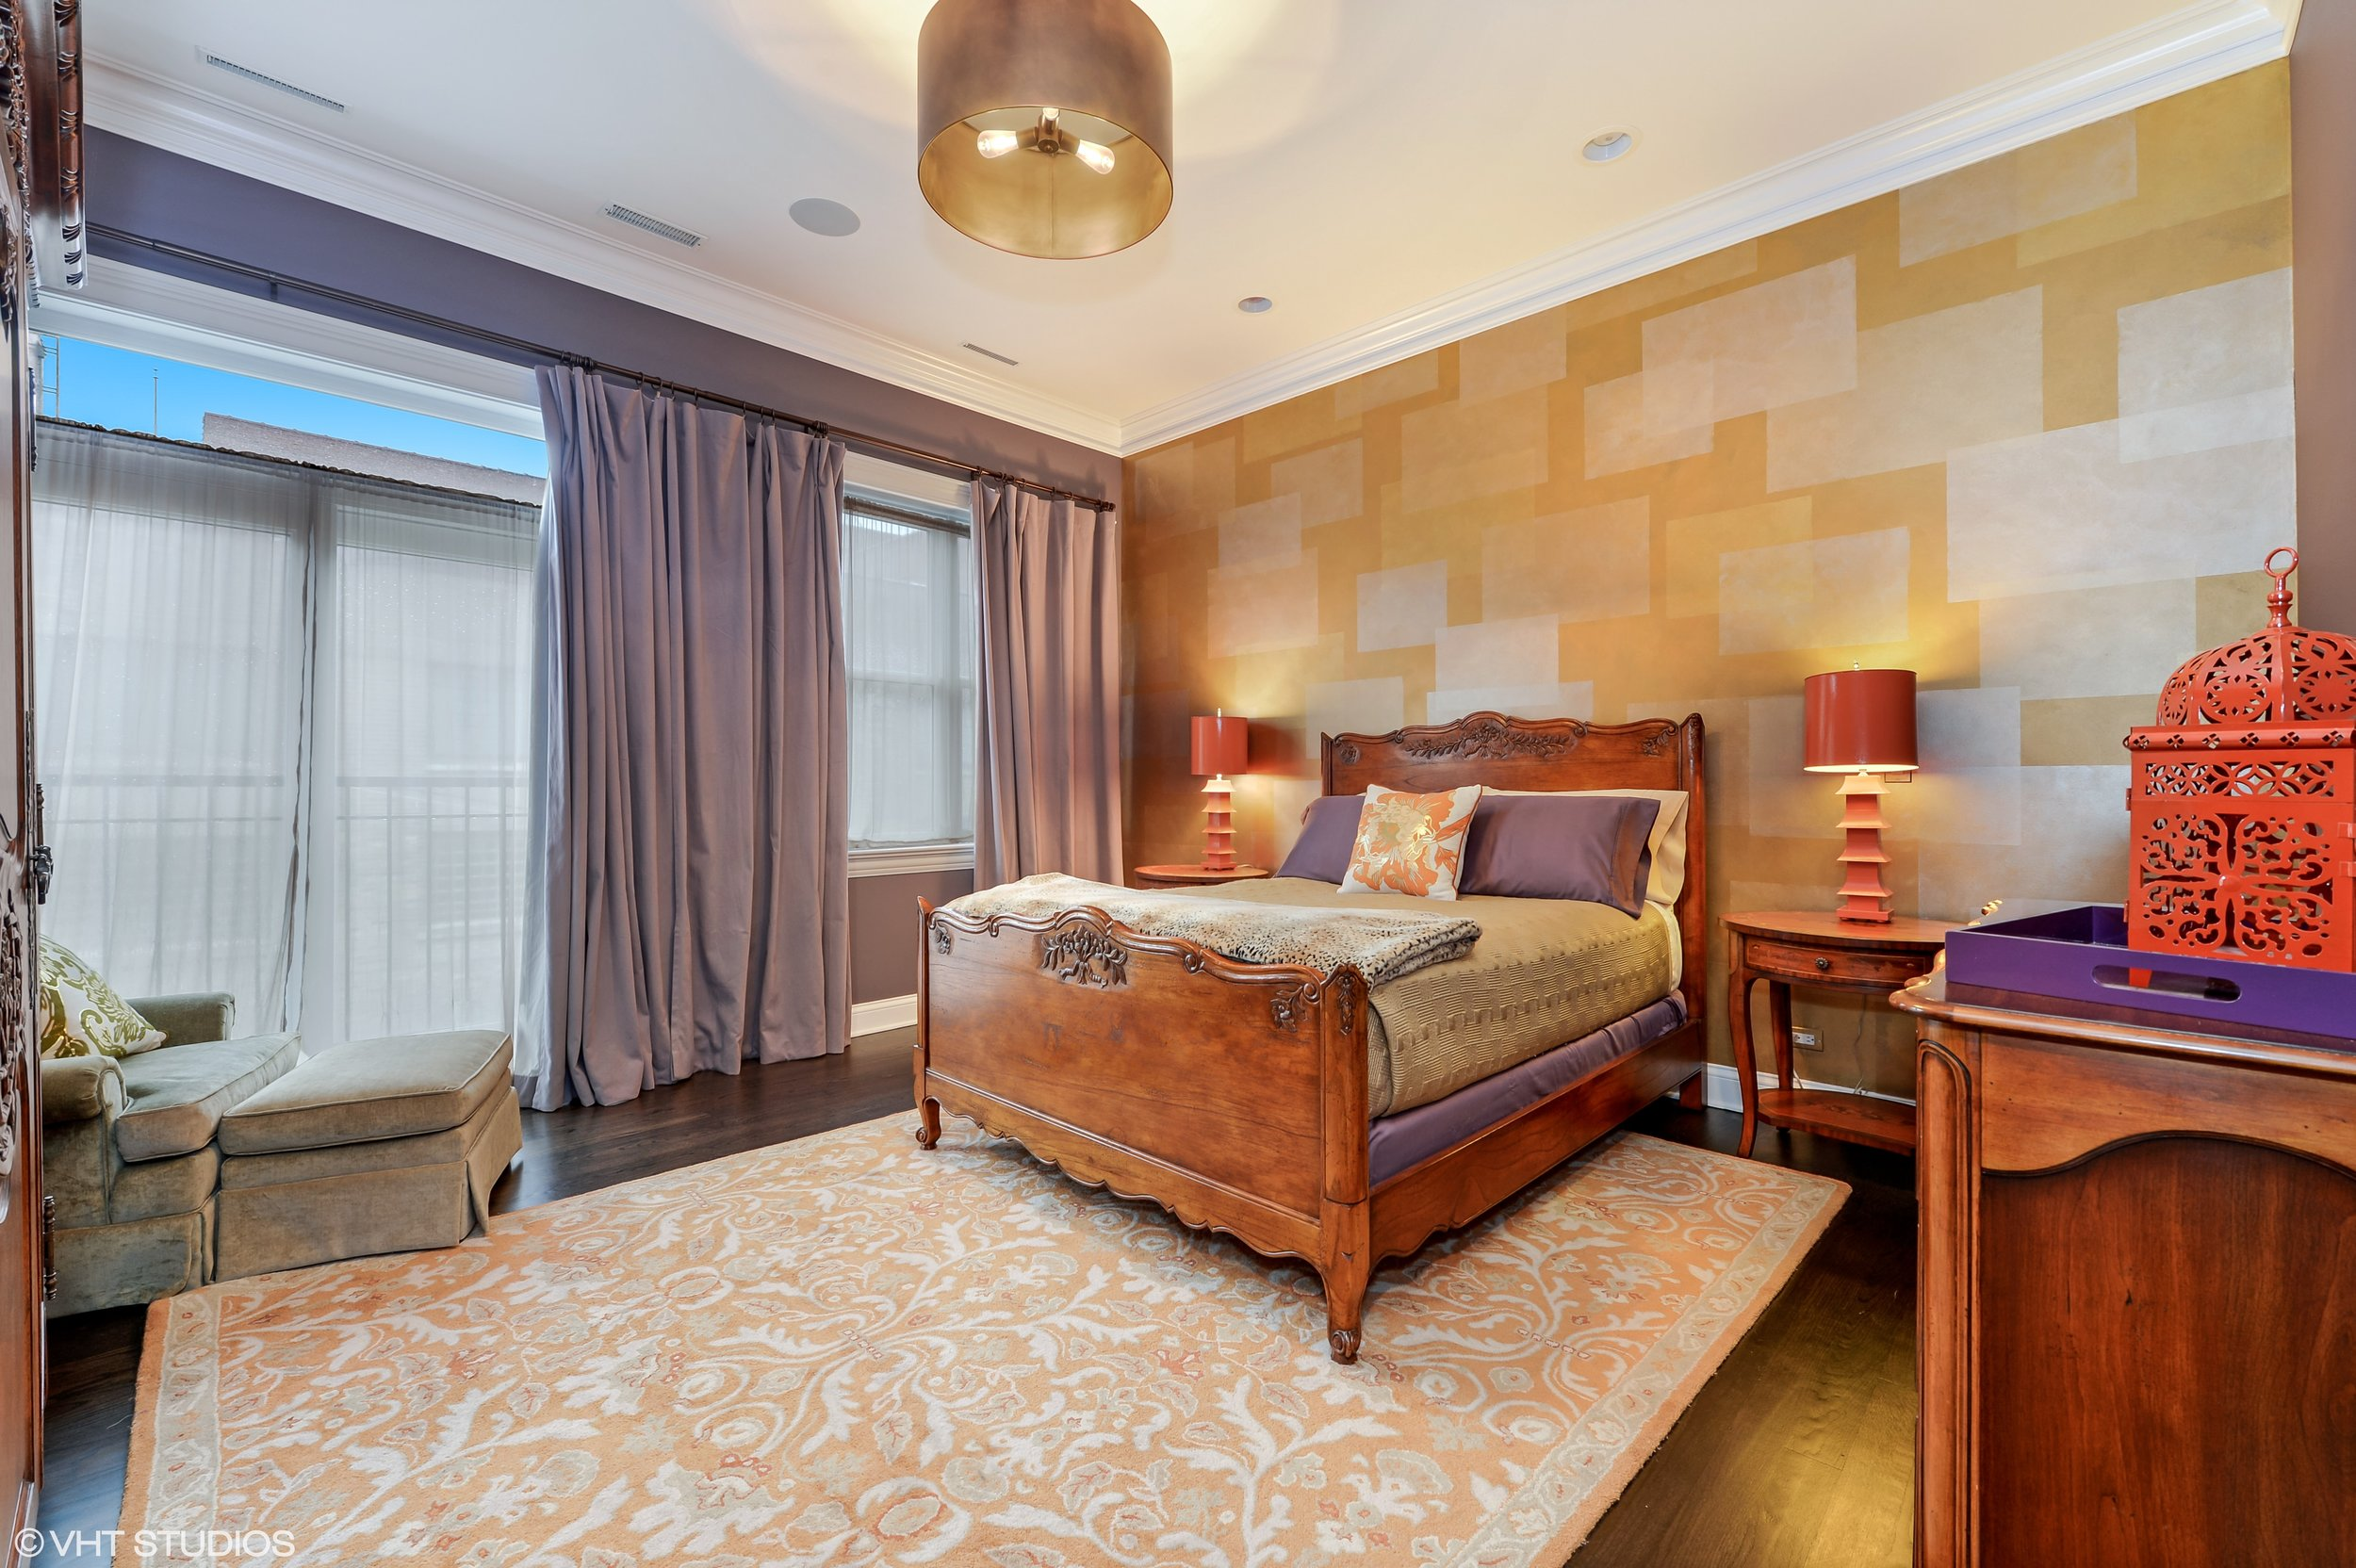 09_3330NorthAshlandAve_2_14_MasterBedroom_HiRes.jpg